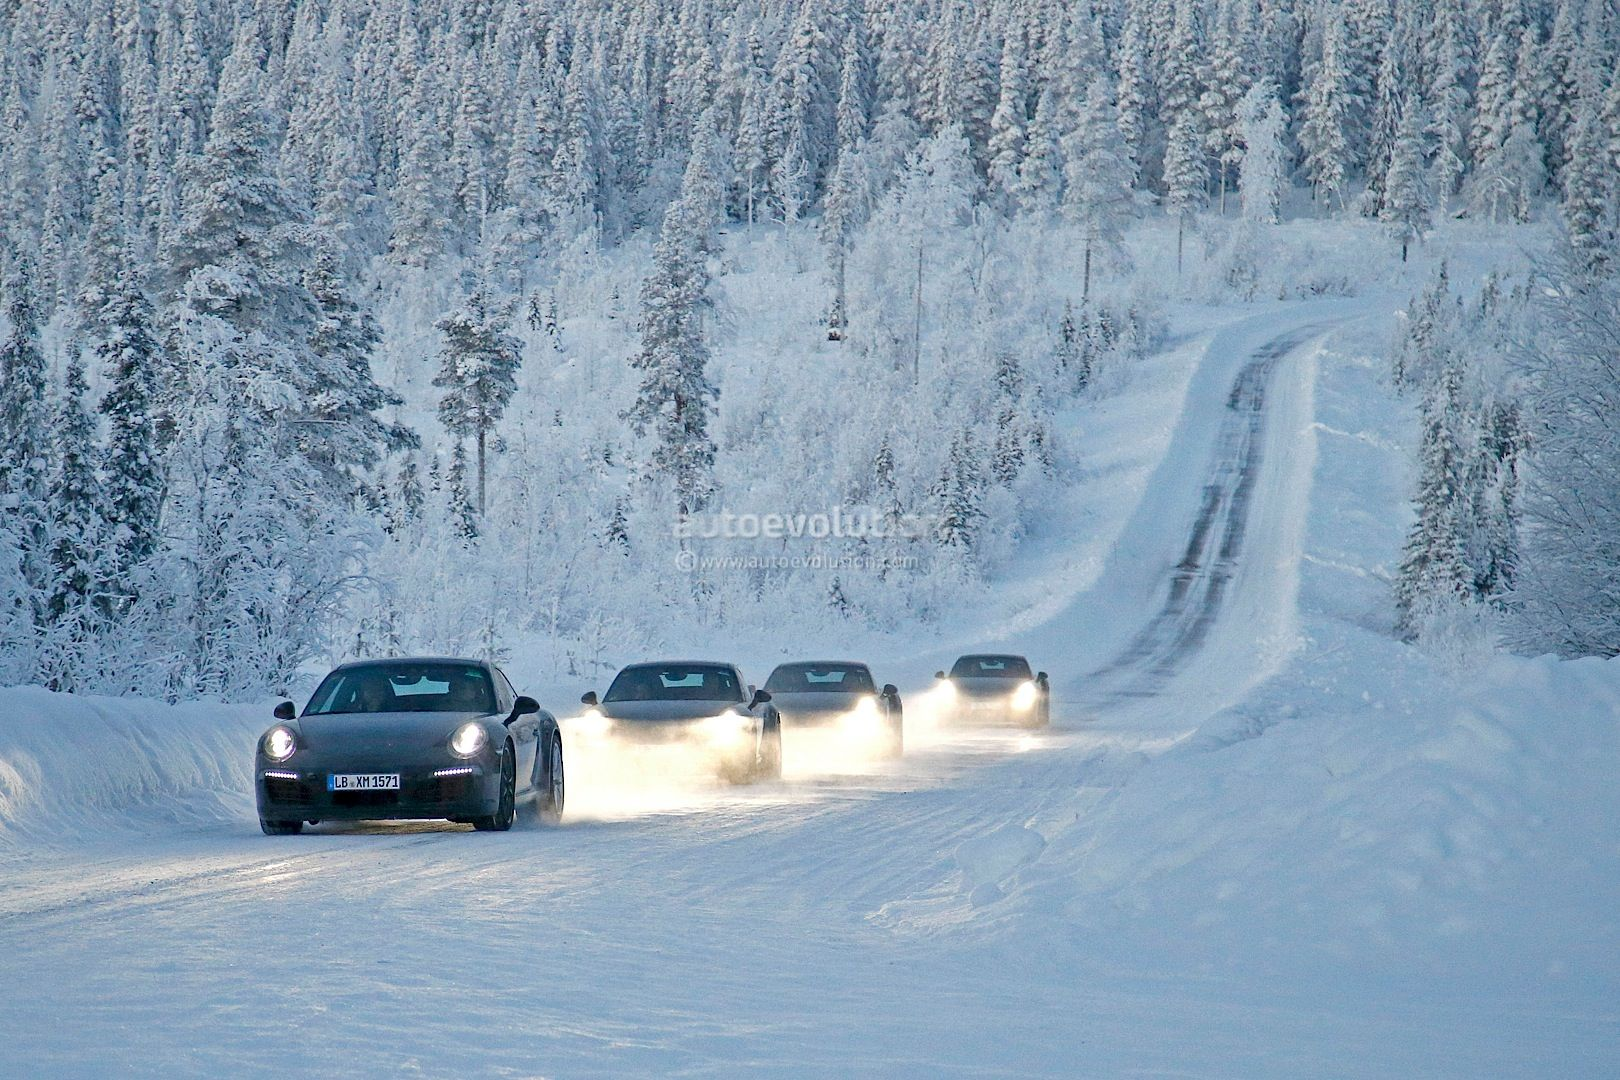 Facelifts for Porsche 911 Carrera and Turbo Models Play in the Snow [Photo Gallery]